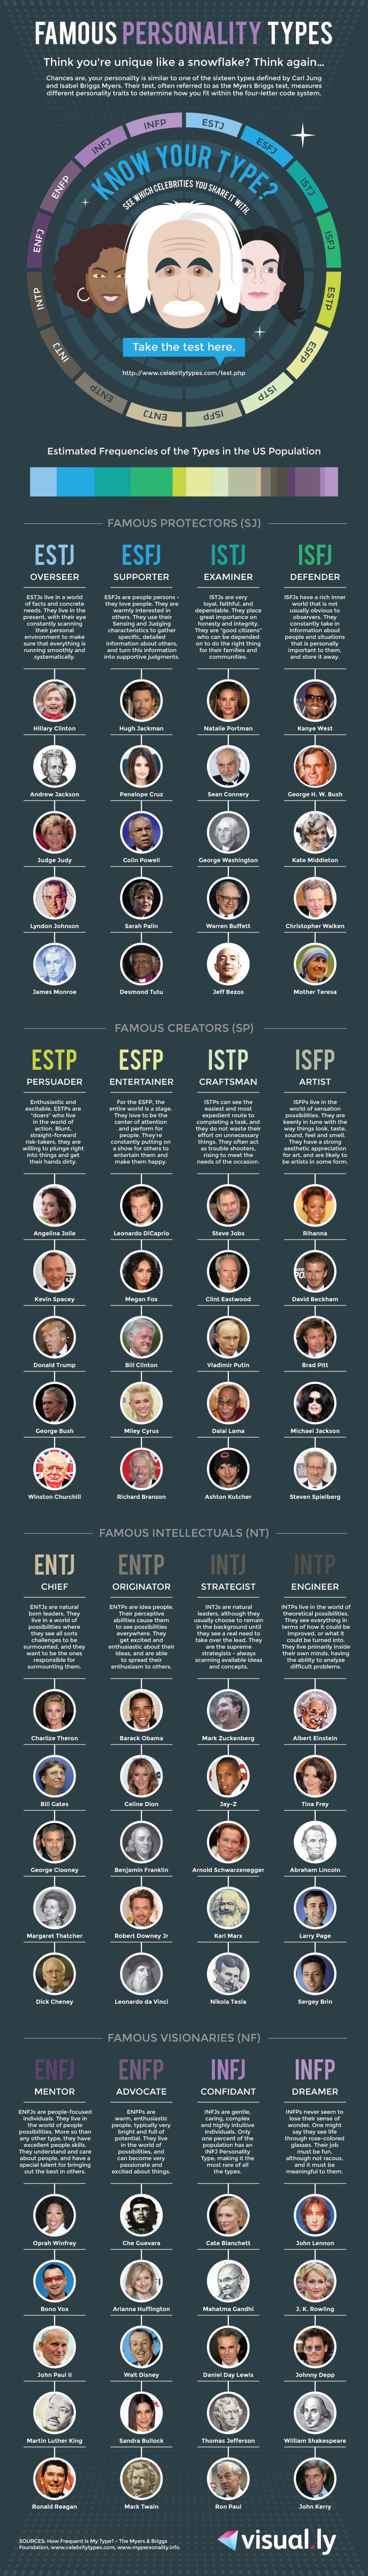 Famous Personality Types #infographic